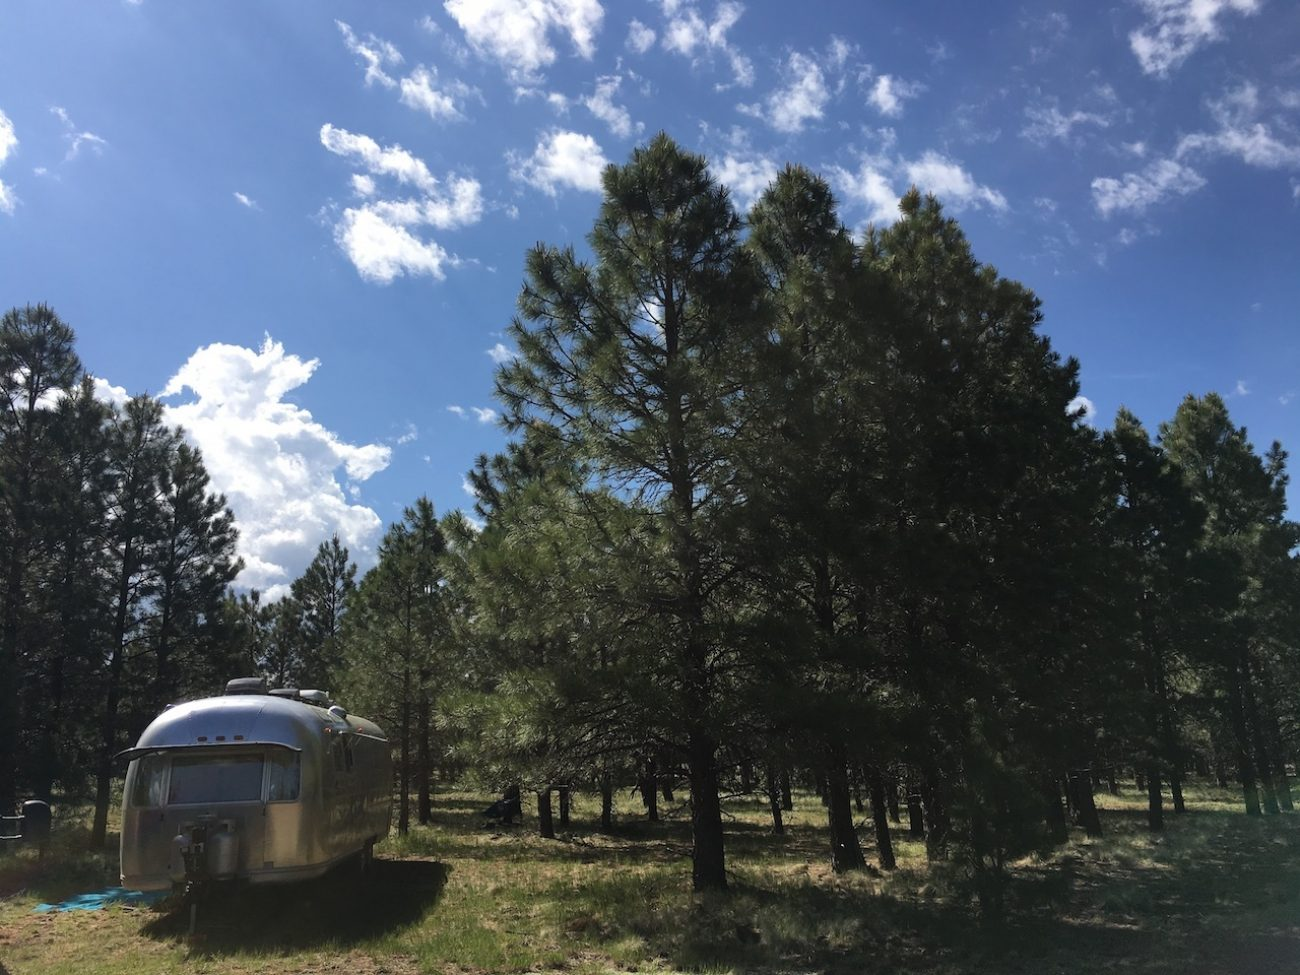 Flagstaff Boondocking